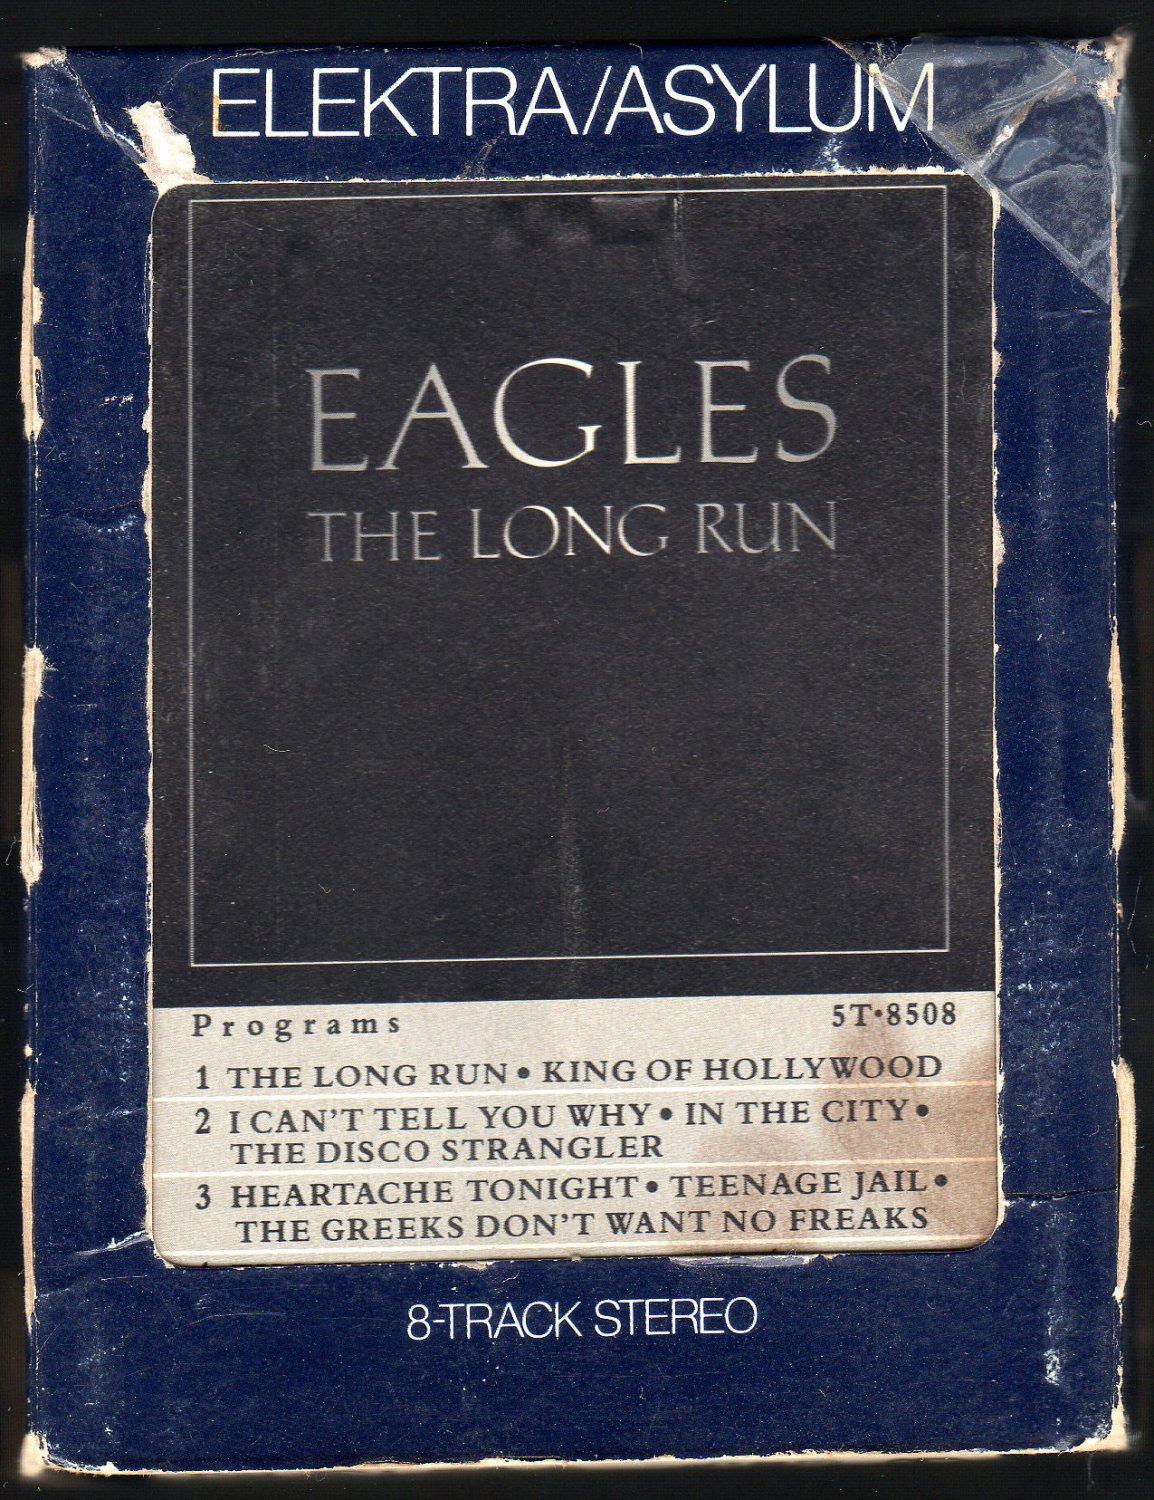 Eagles - The Long Run 1979 ELEKTRA A28 8-TRACK TAPE